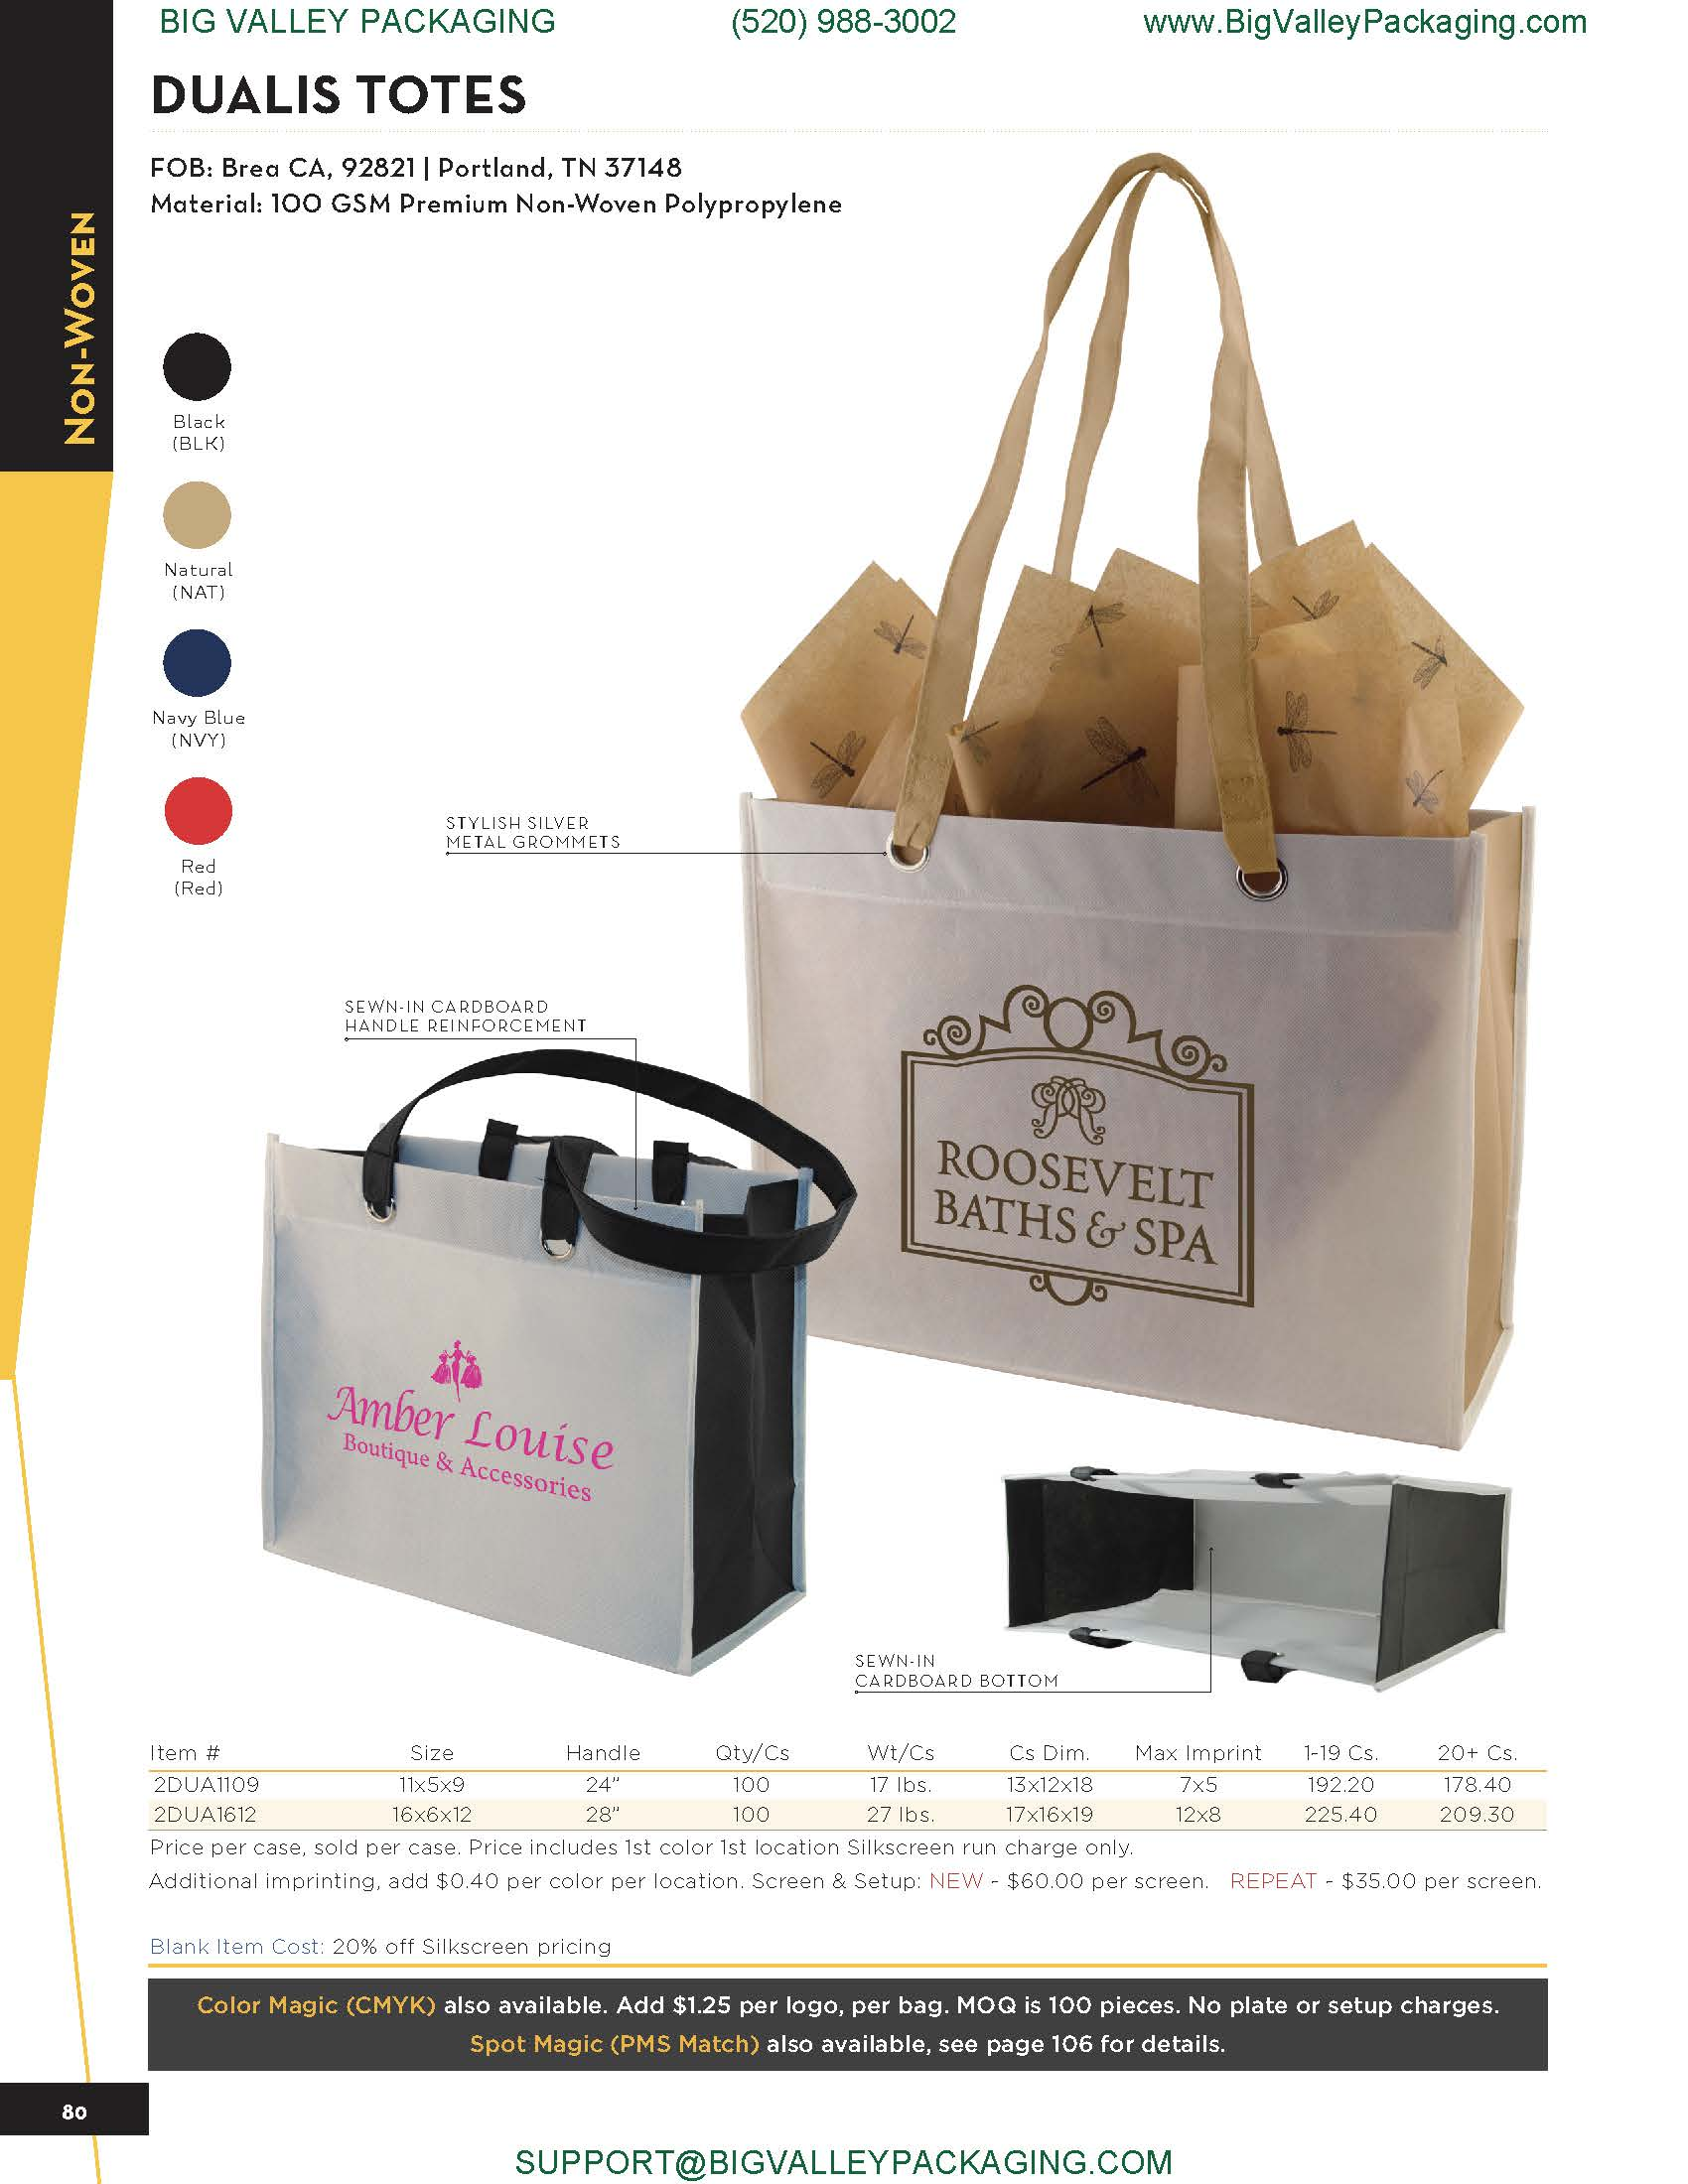 MATERIAL HANDLE CARRY DUALIS TOTES